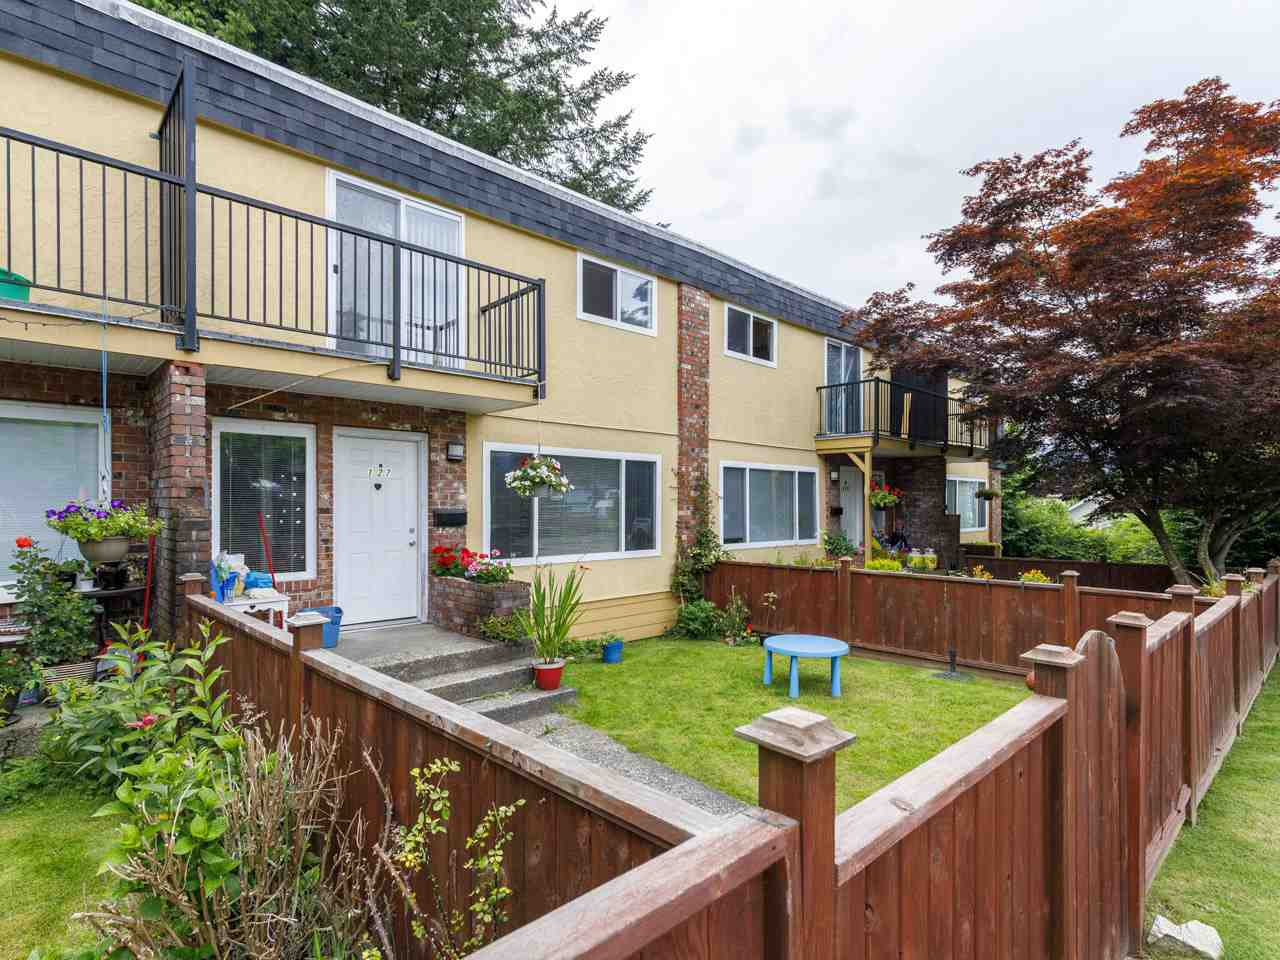 Main Photo: 123-129 MARY Street in Port Moody: Port Moody Centre Fourplex for sale : MLS®# R2476189